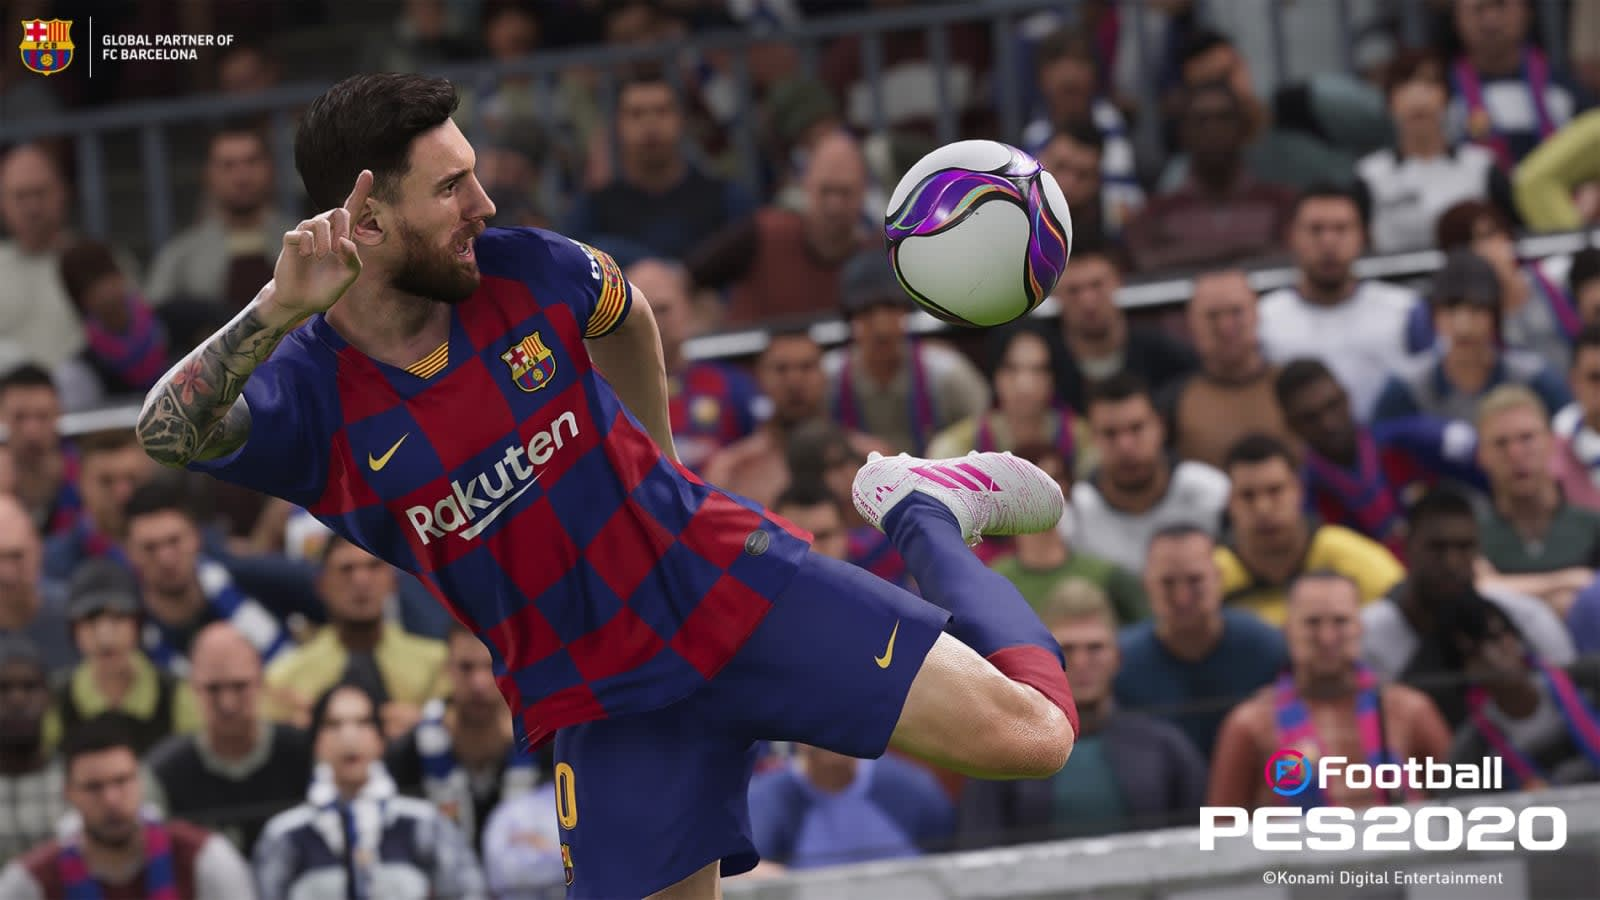 Best Music Player For Windows 10 2020 Things are looking up for 'Pro Evolution Soccer 2020'